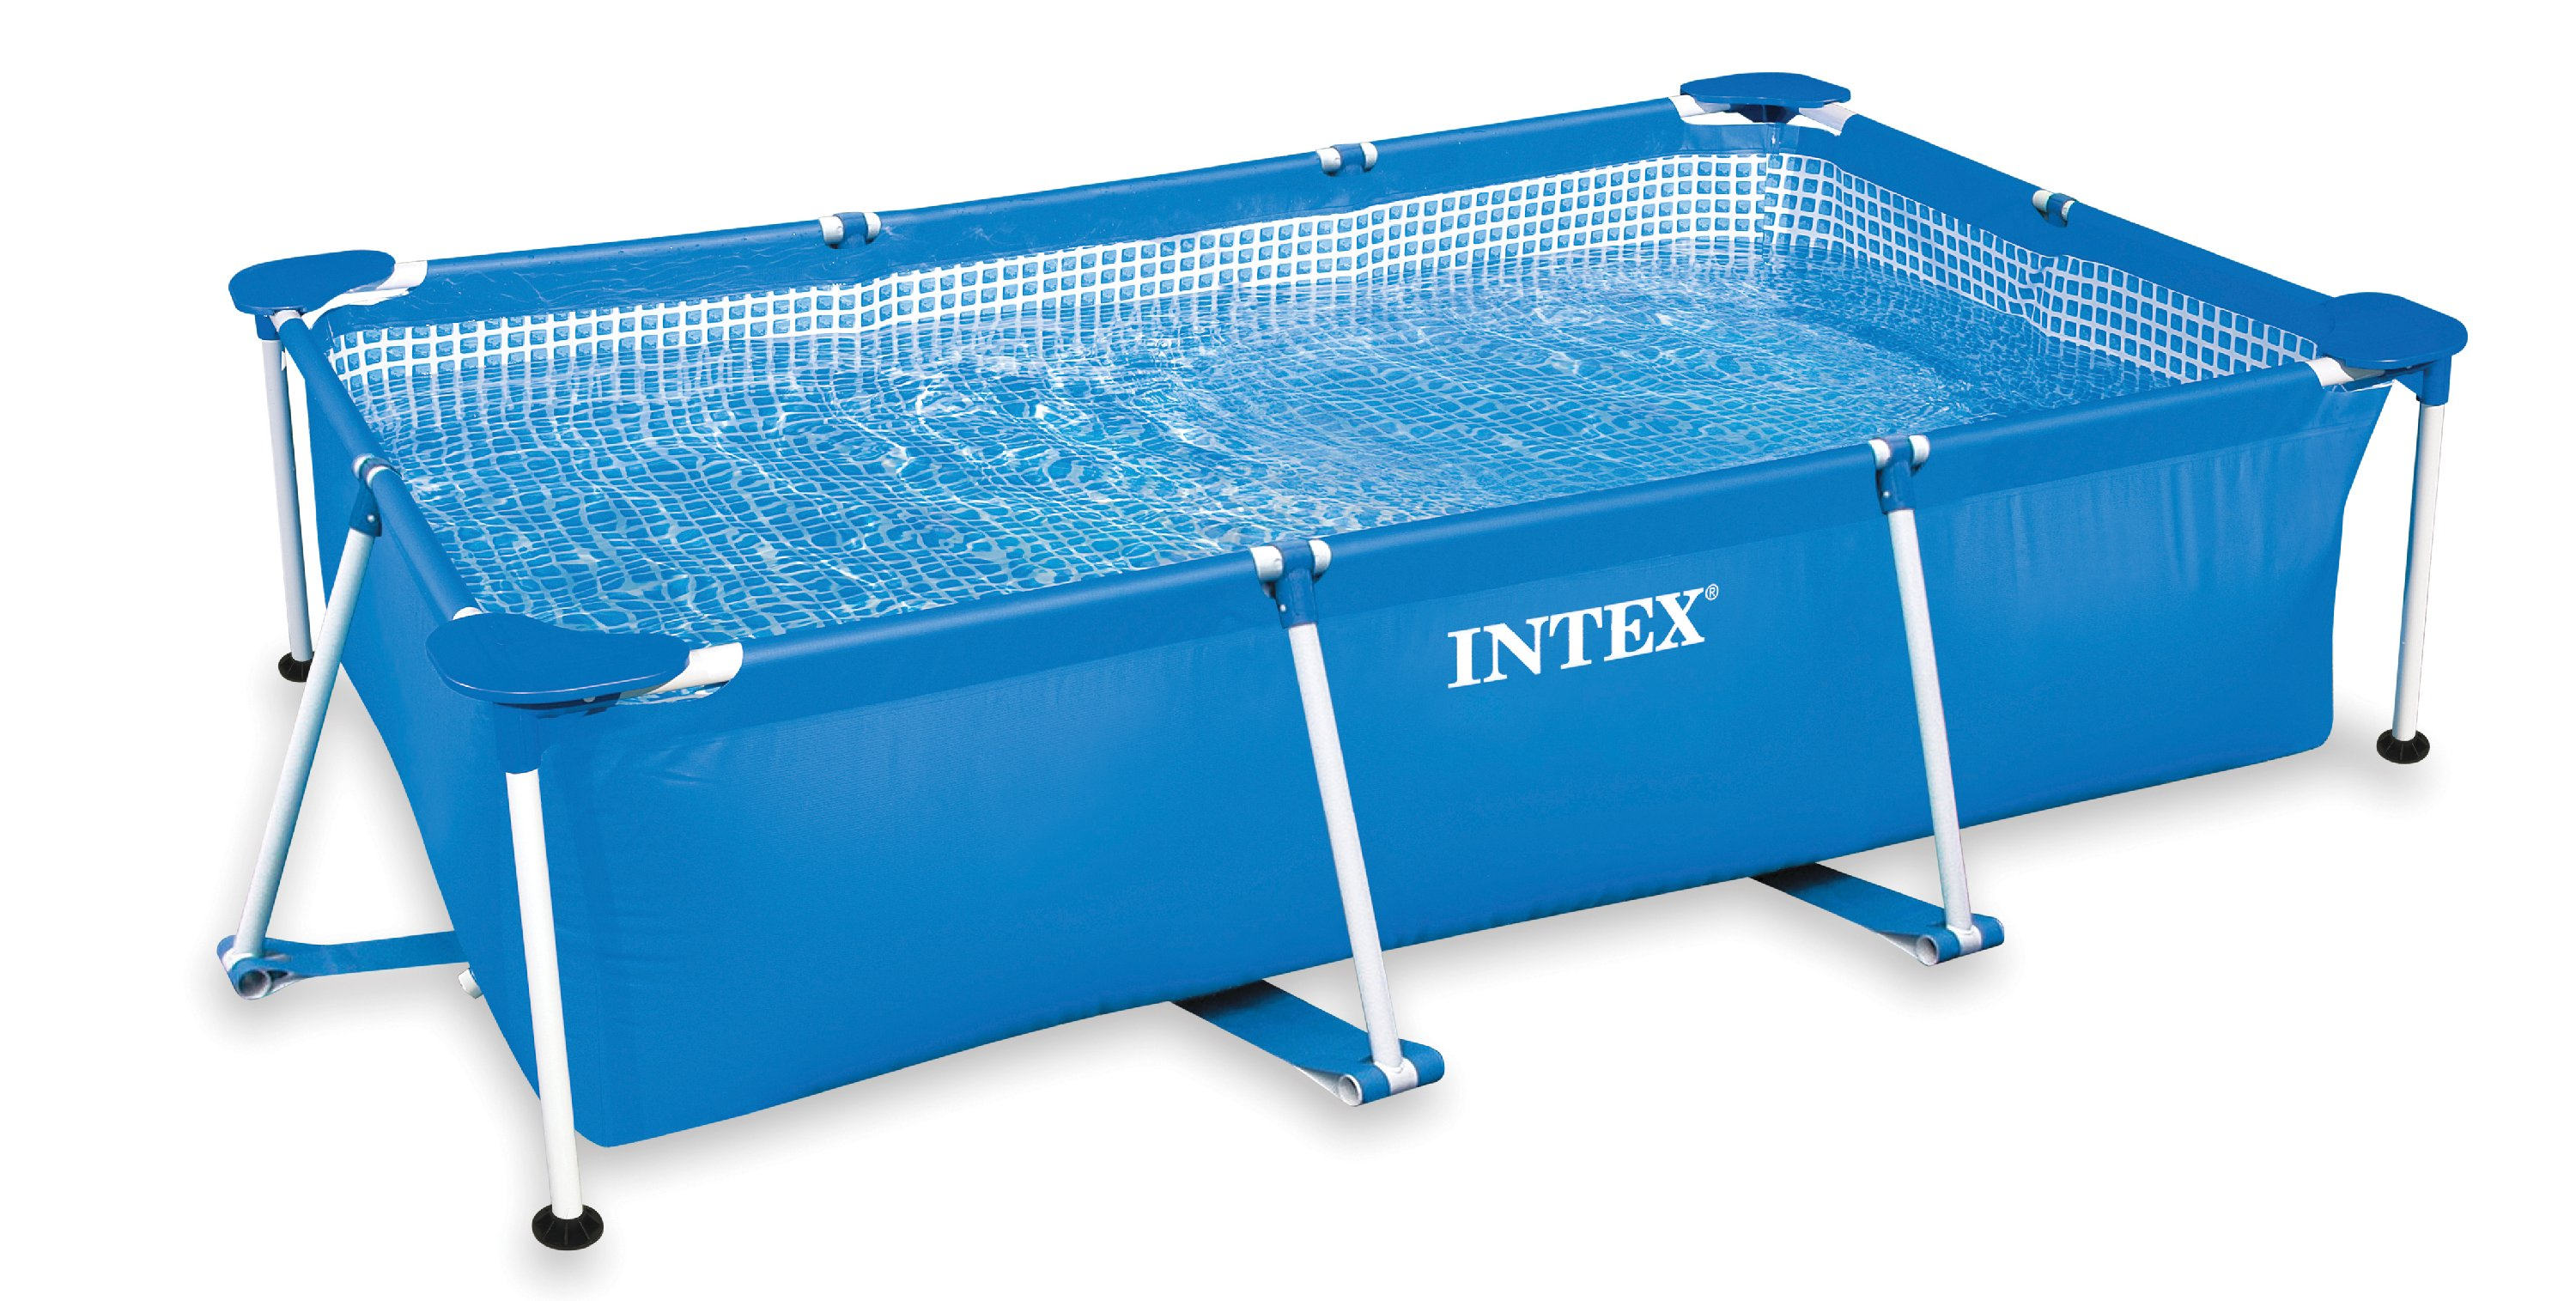 "Intex 86"" x 59"" x 23"" Rectangular Frame Above Ground Baby Splash Swimming Pool by Intex"